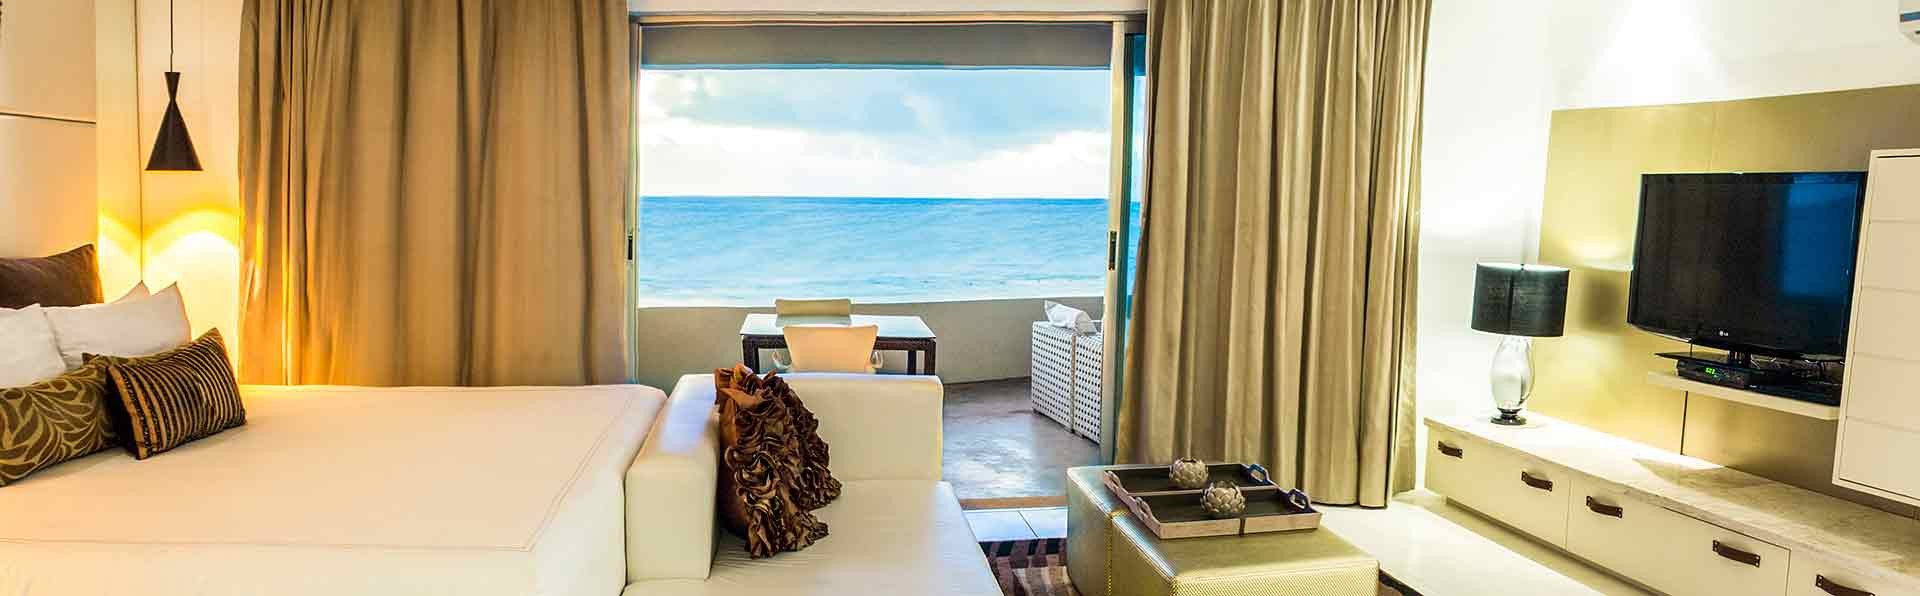 Oceanfront Passion Suite - Desire Resort Riviera Maya